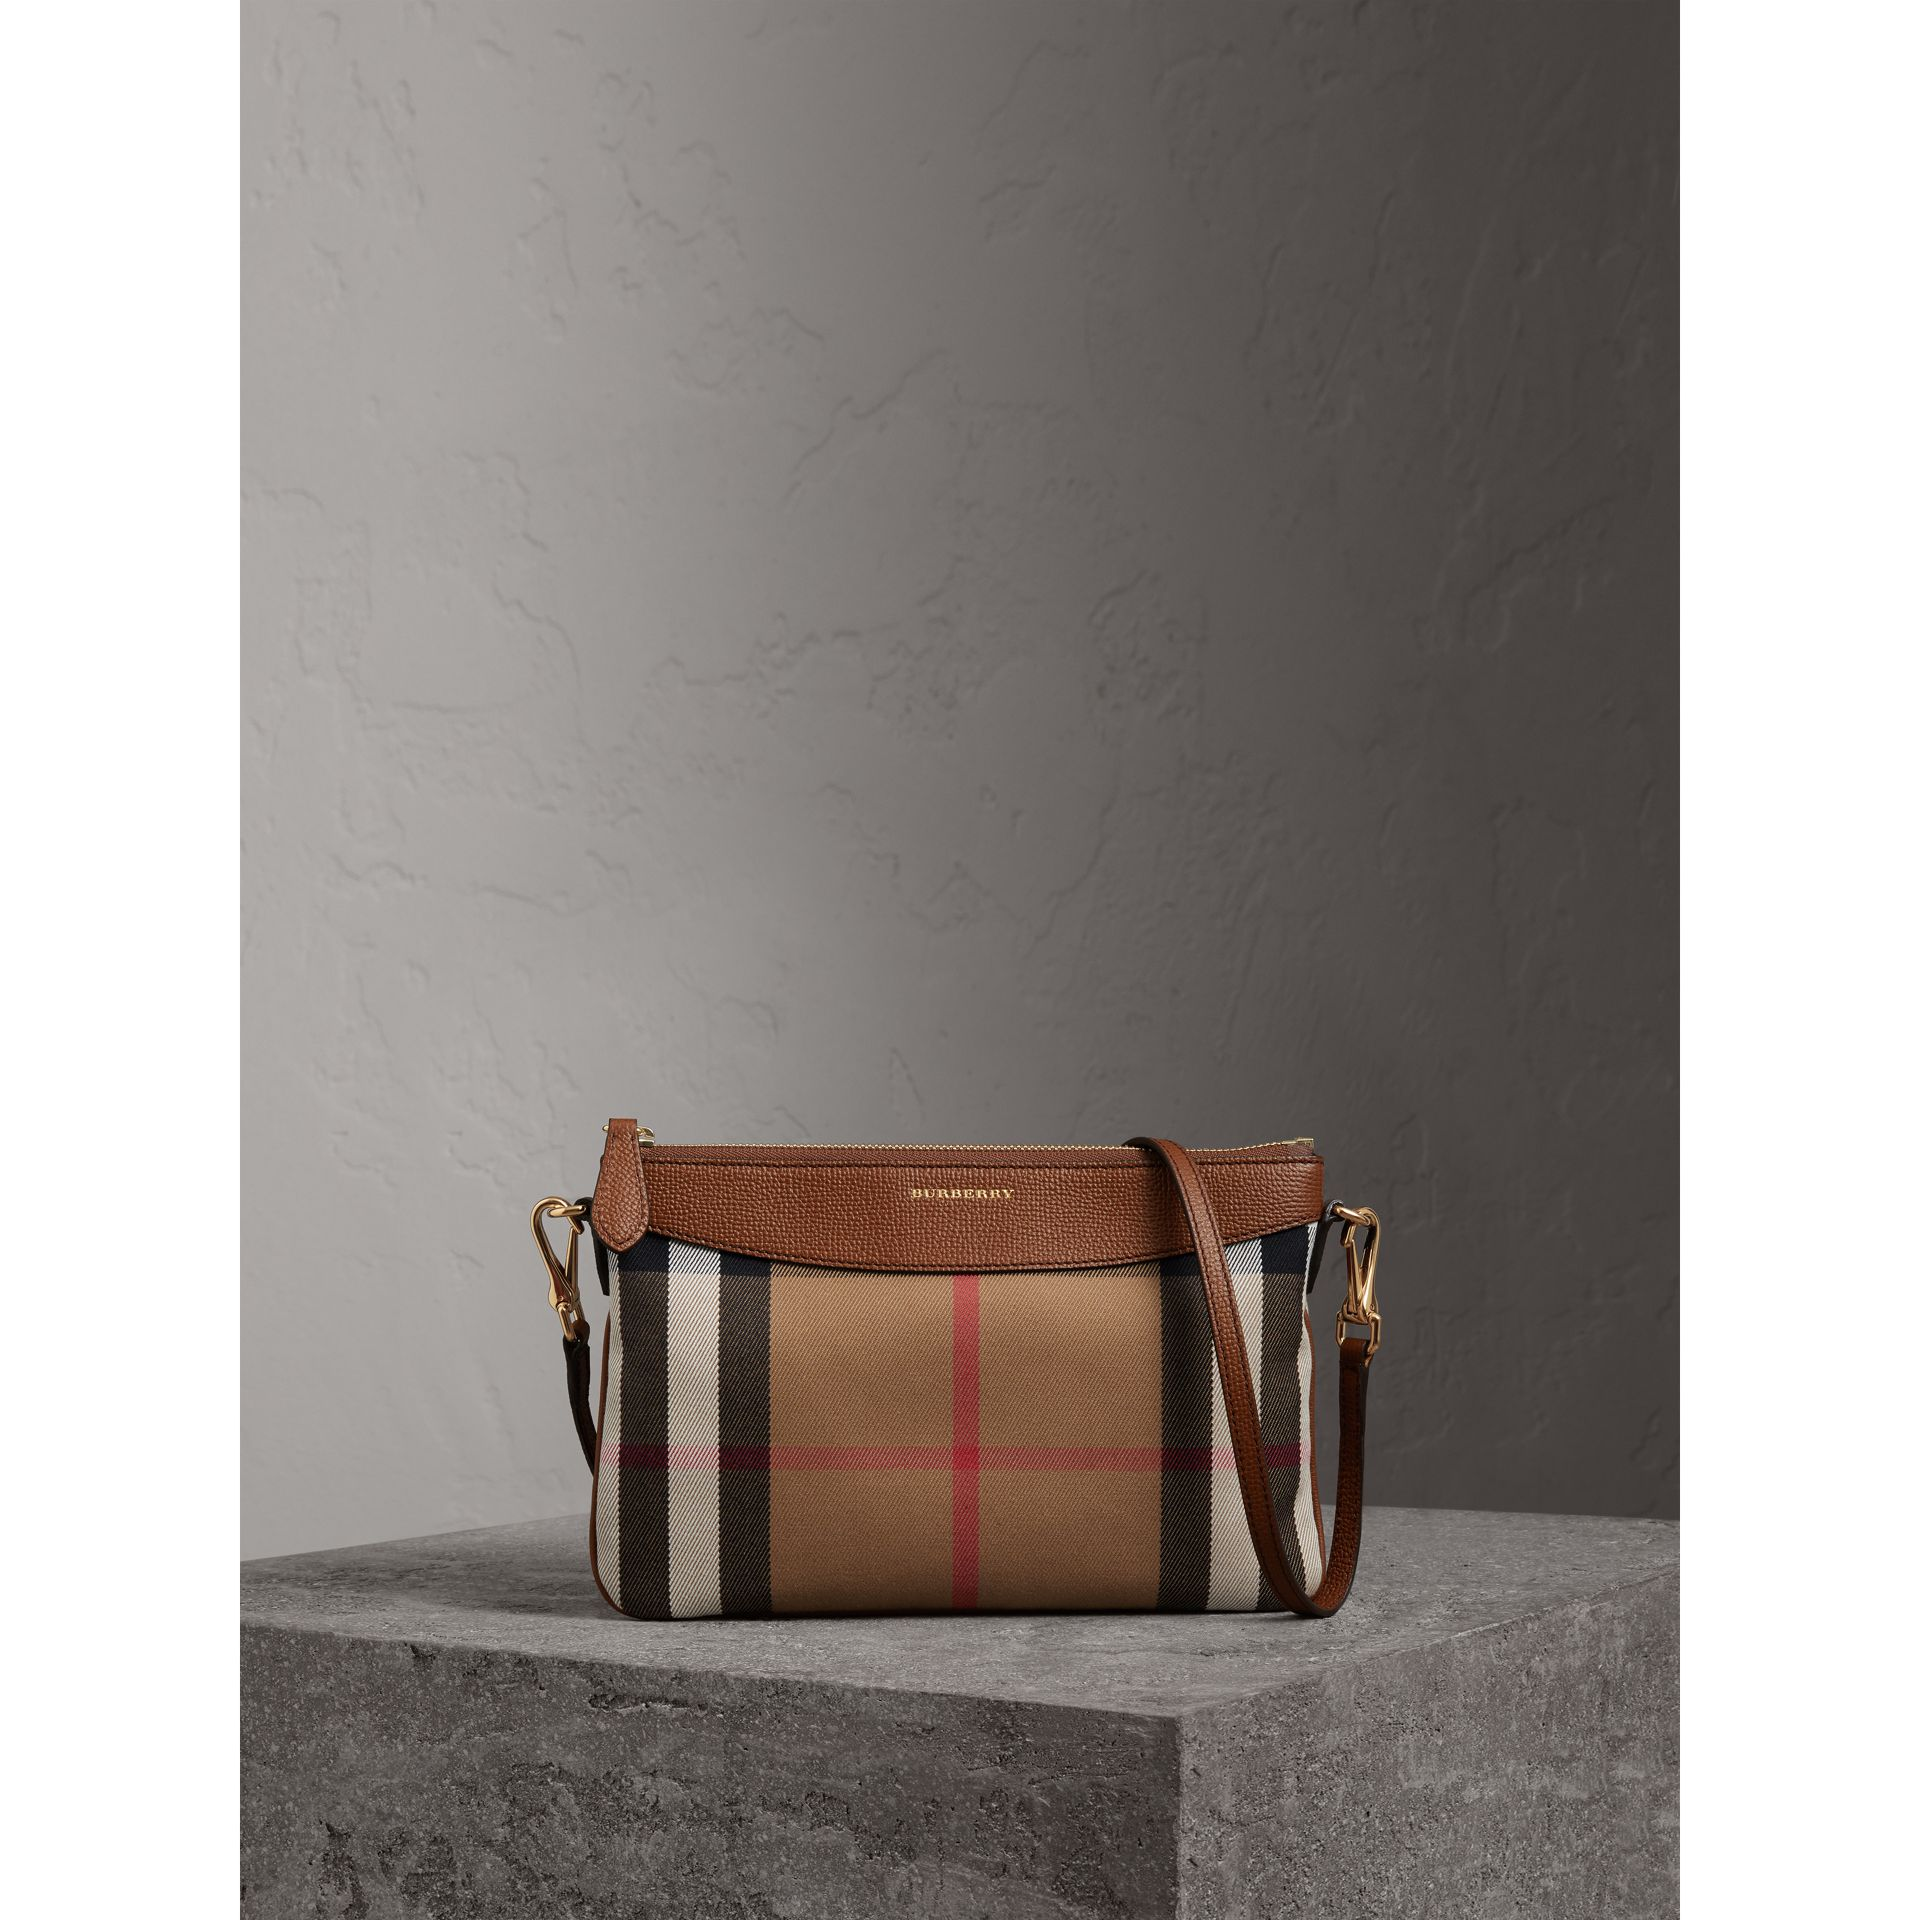 House Check and Leather Clutch Bag in Tan - Women | Burberry Singapore - gallery image 0